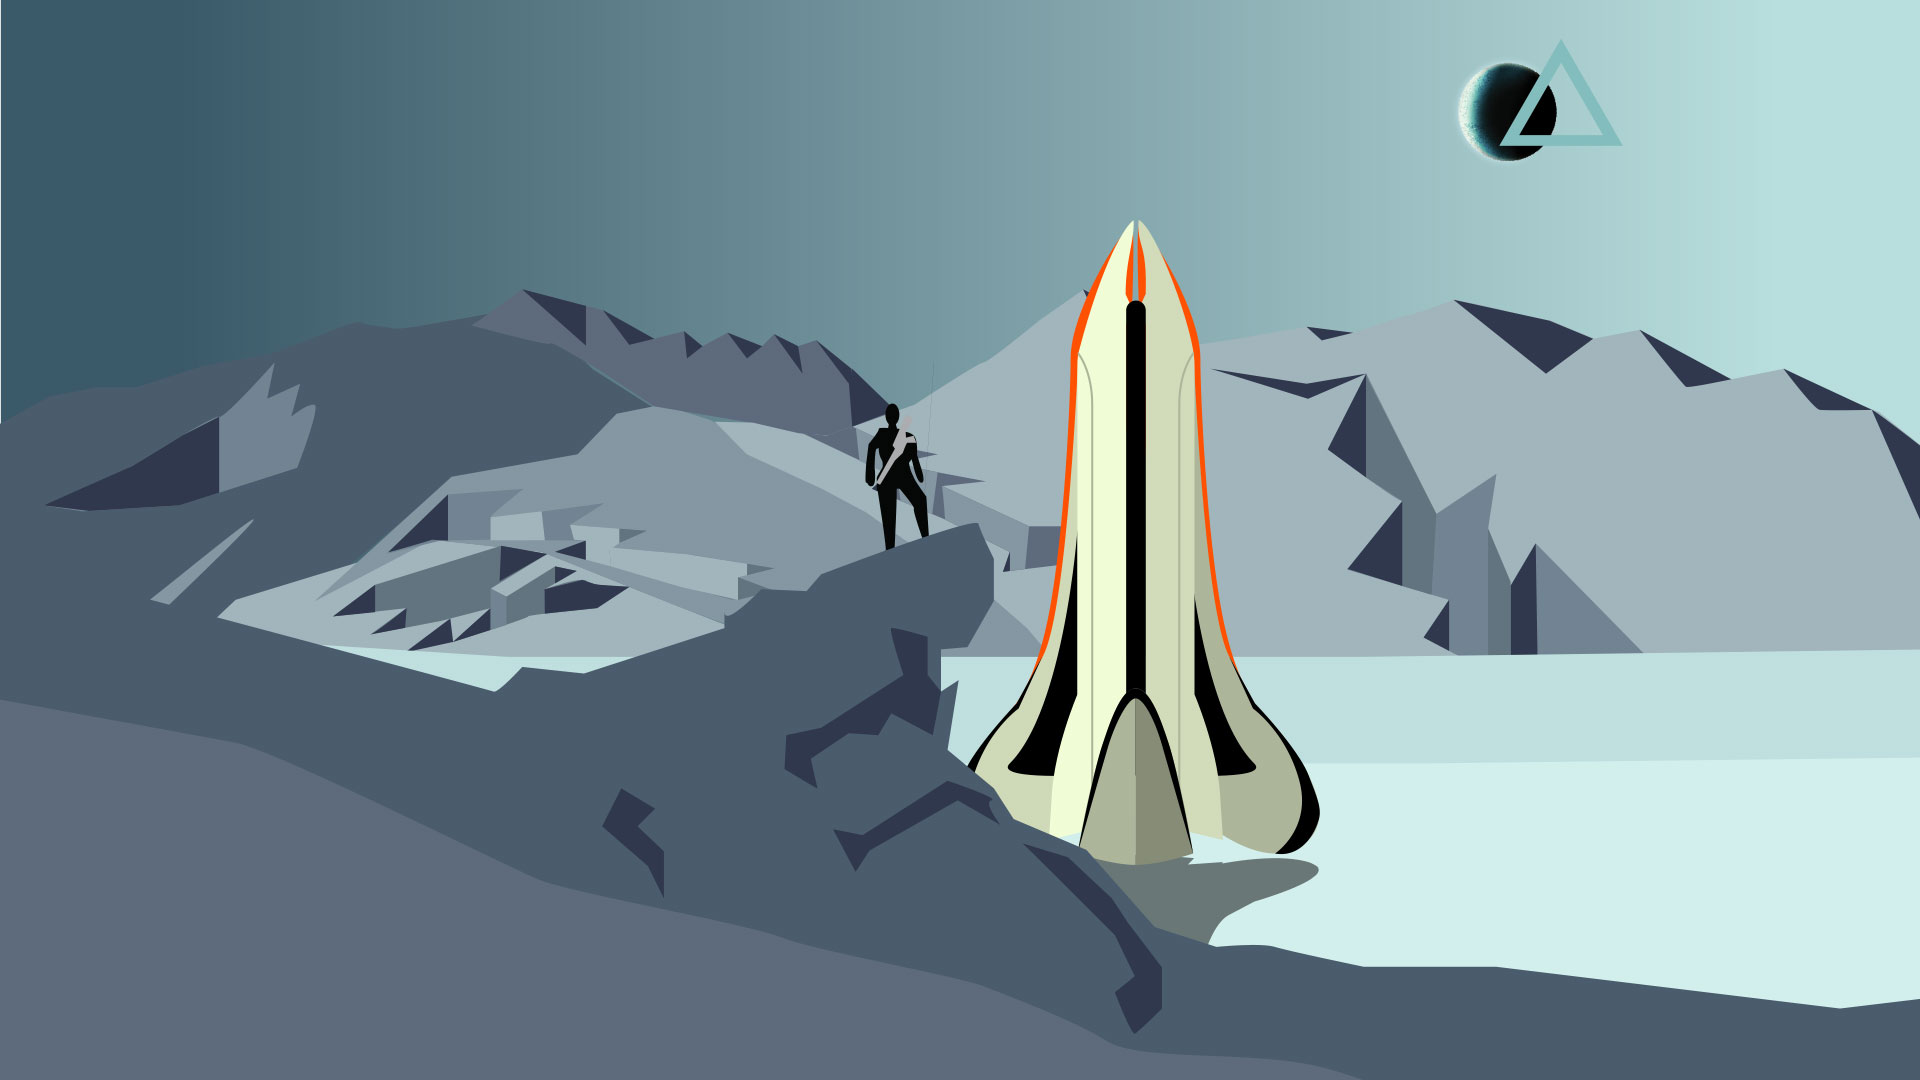 Space - image 1 - student project